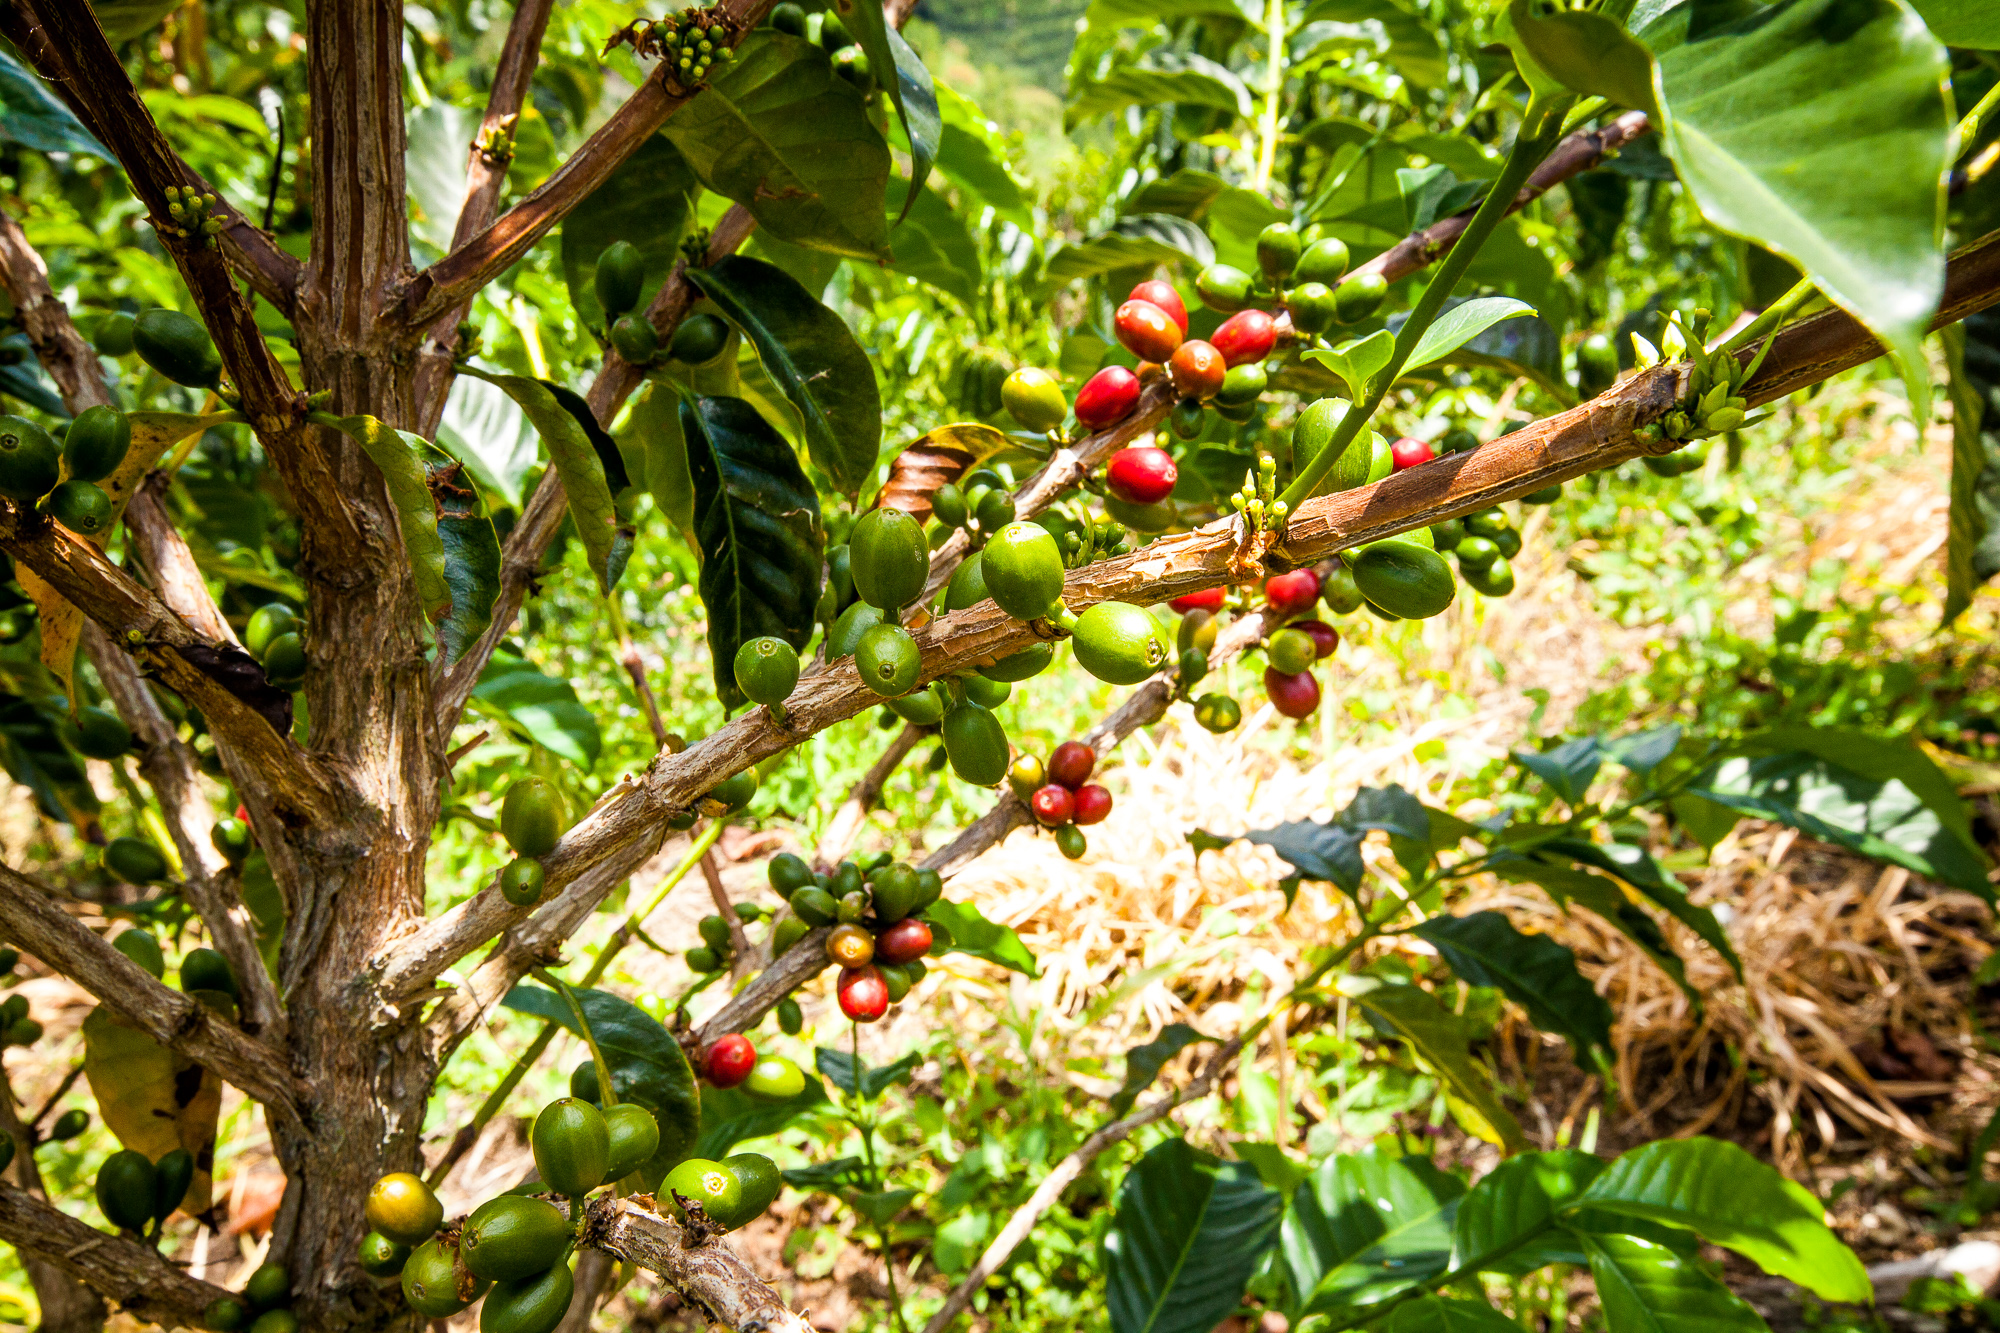 Red Condor Tolima - CQI SCORE: 84.50# 36500010 / Fully-washed / Spot / Colombia, CaturraContinental - Kearny, NJAVAILABILITY: 38 (70kg bags)